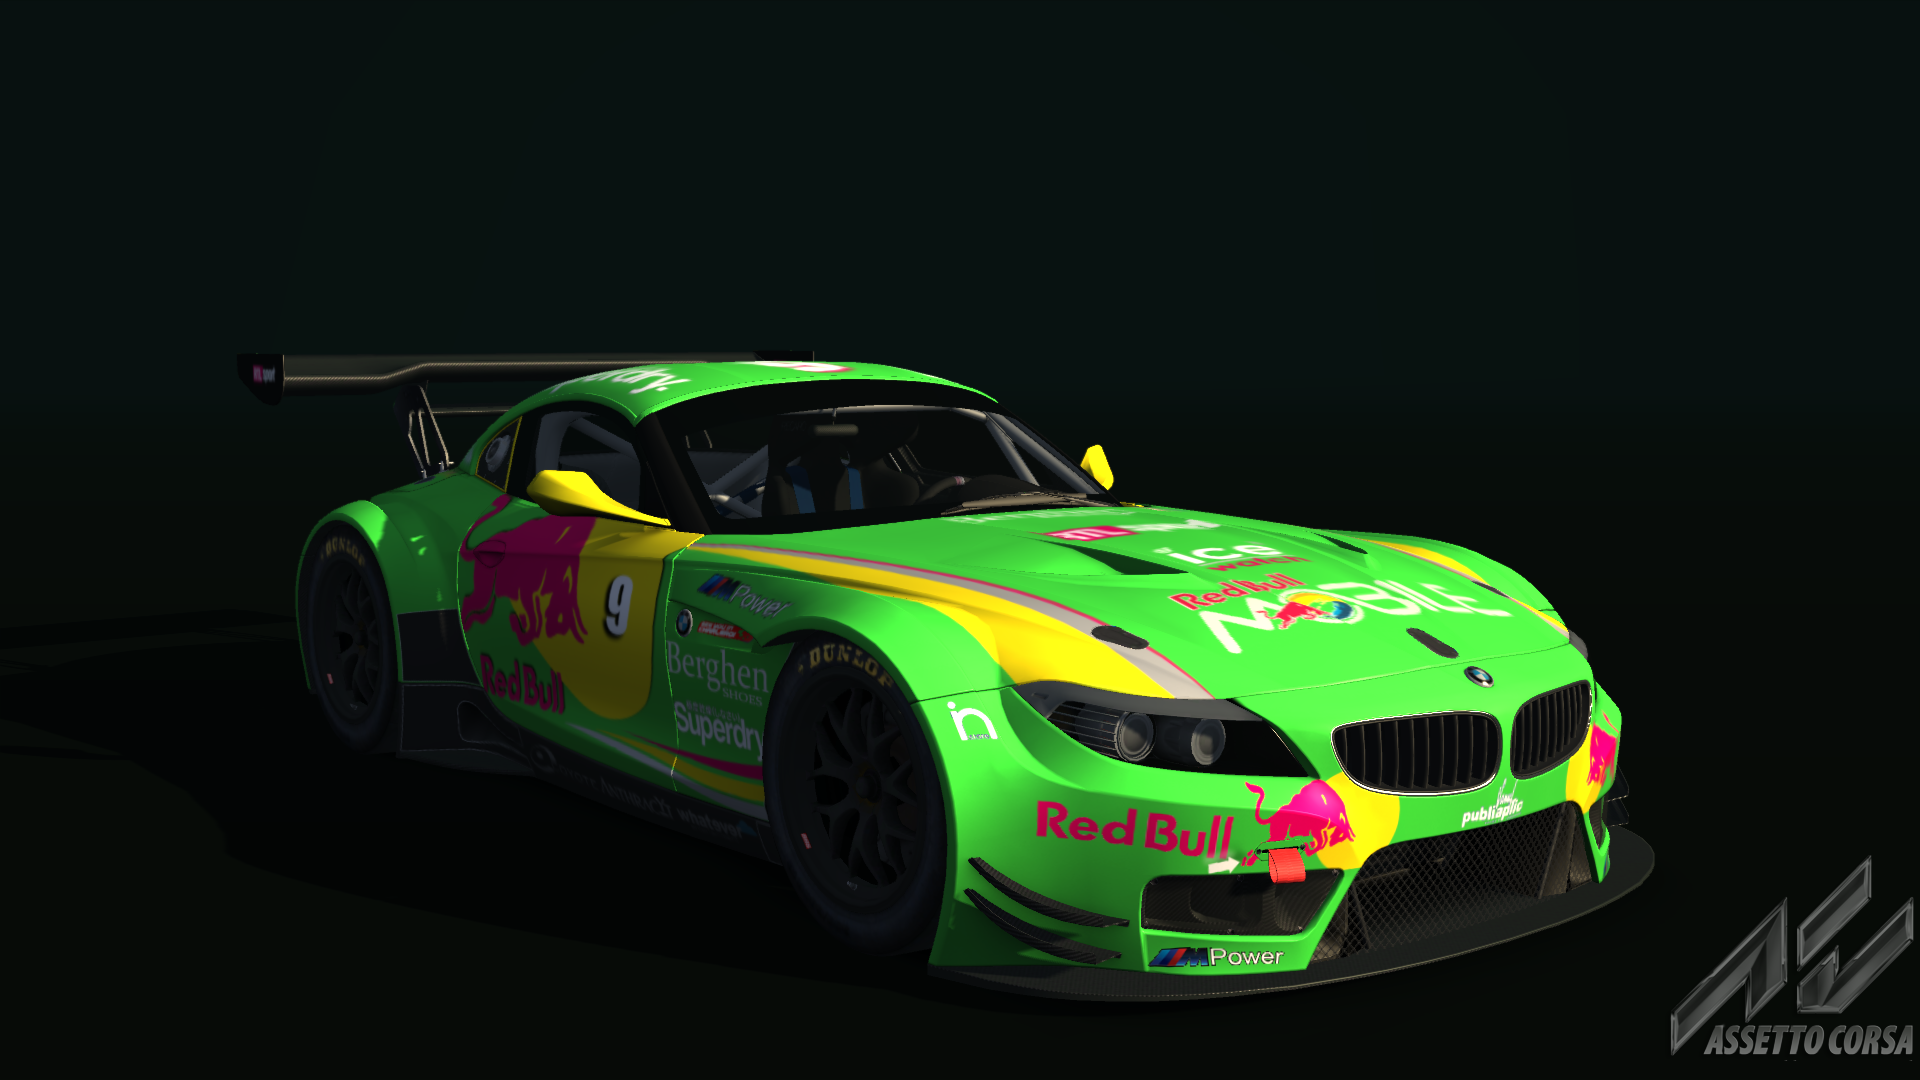 Showroom_bmw_z4_gt3_3-2-2014-19-22-24.png